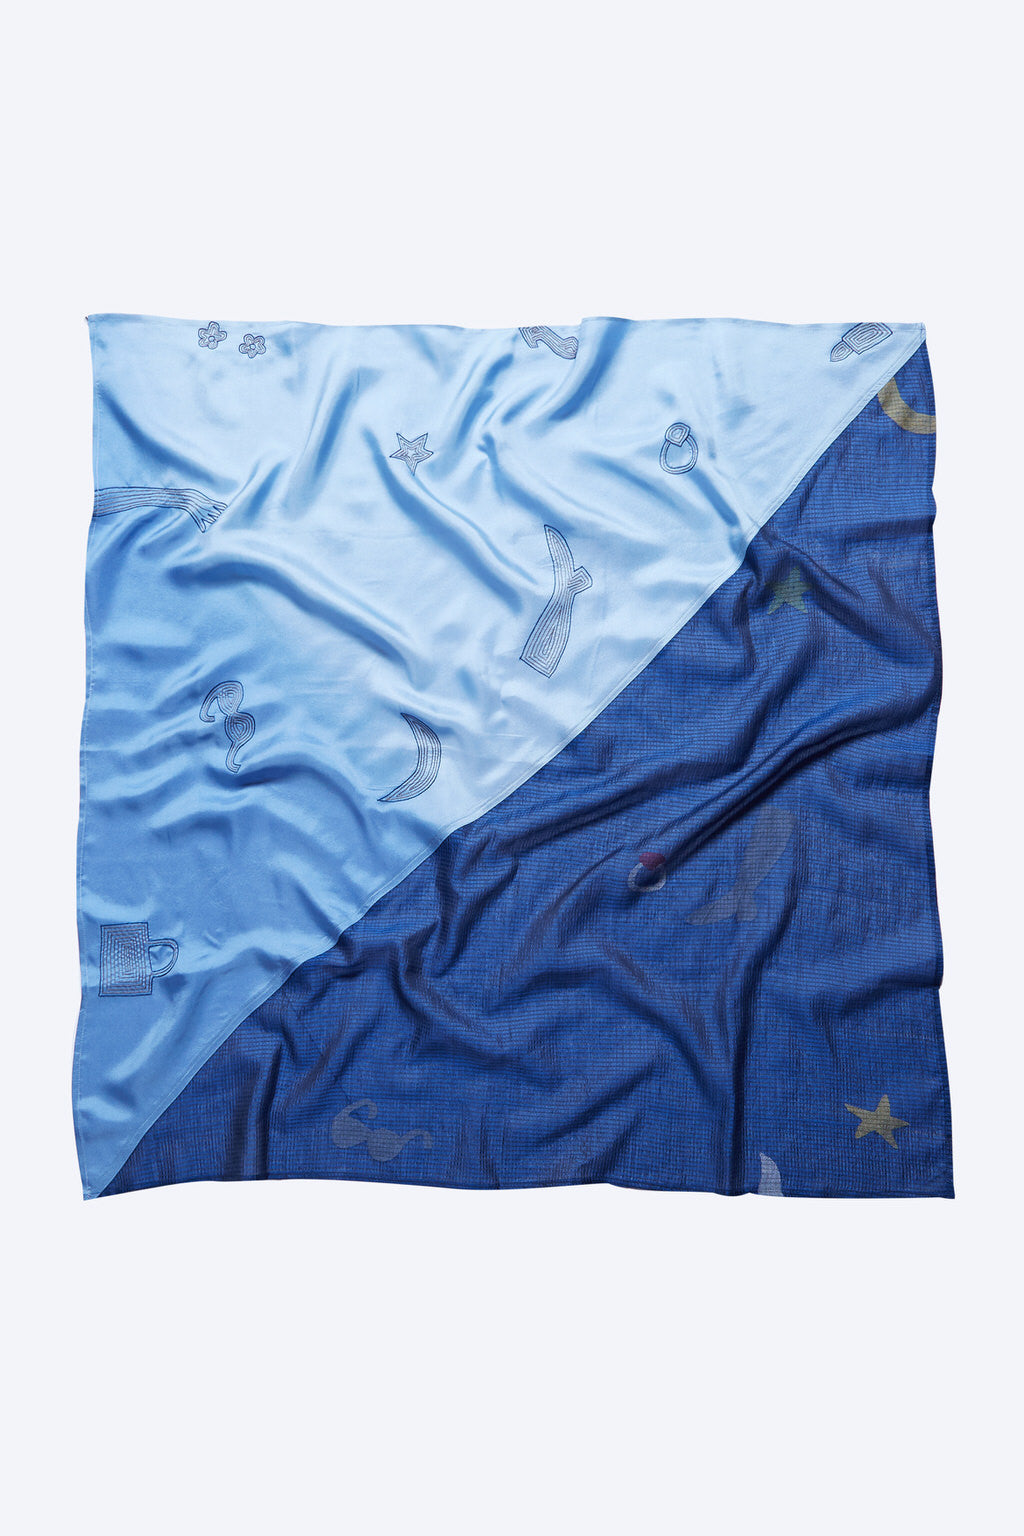 Mysteries of the Ocean - Blue Cotton Silk Square Scarf